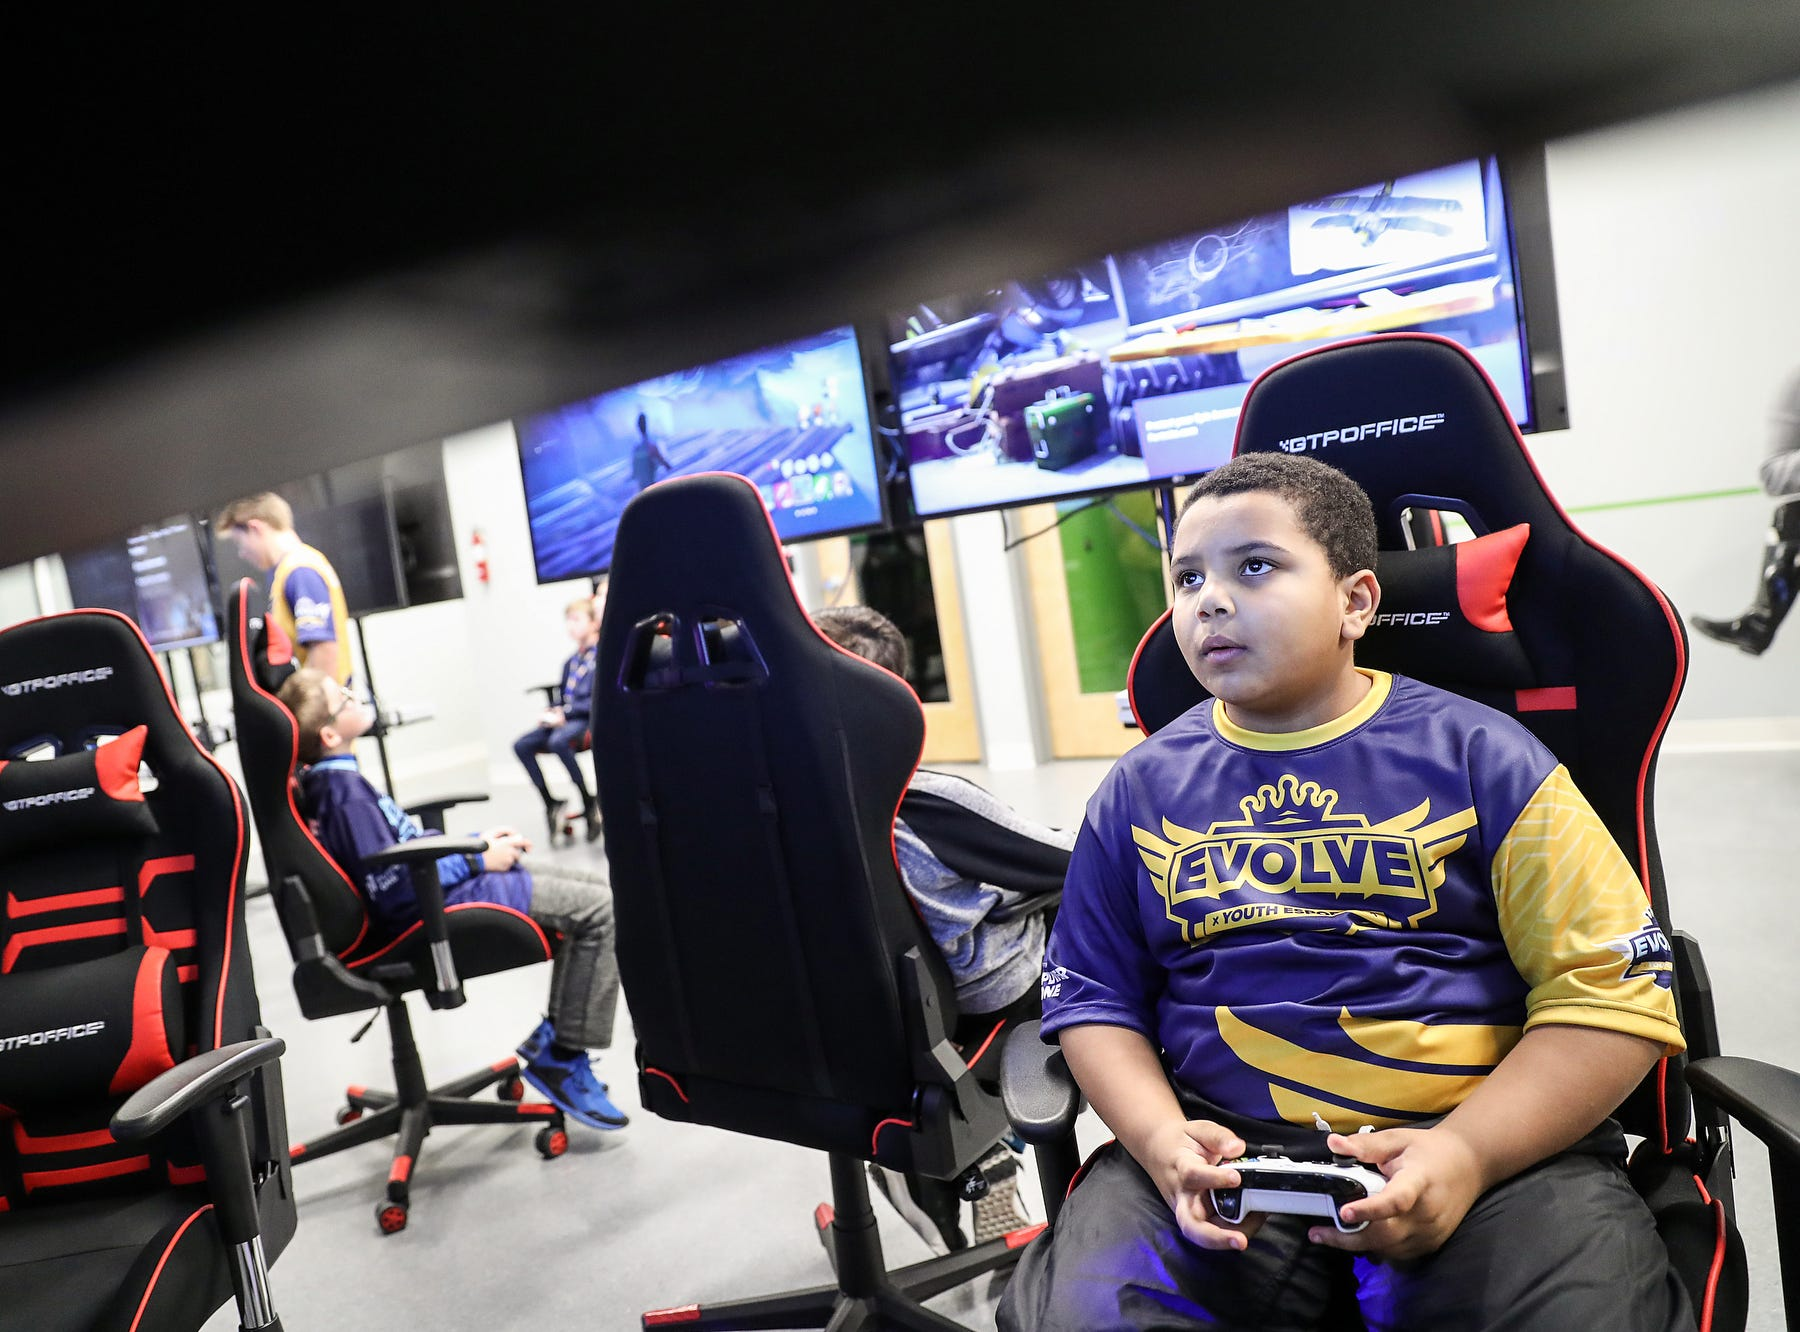 Kaleb Jones, 9, competes in a video game during an Evolve Youth Sports practice at the Player One arena in Carmel, Ind., Thursday, Jan. 24, 2019. Scott Wise, original founder of Scotty's Brewhouse, has partnered with Player One Esports for his next venture, a video game sports league that has attracted around 200 kids so far.